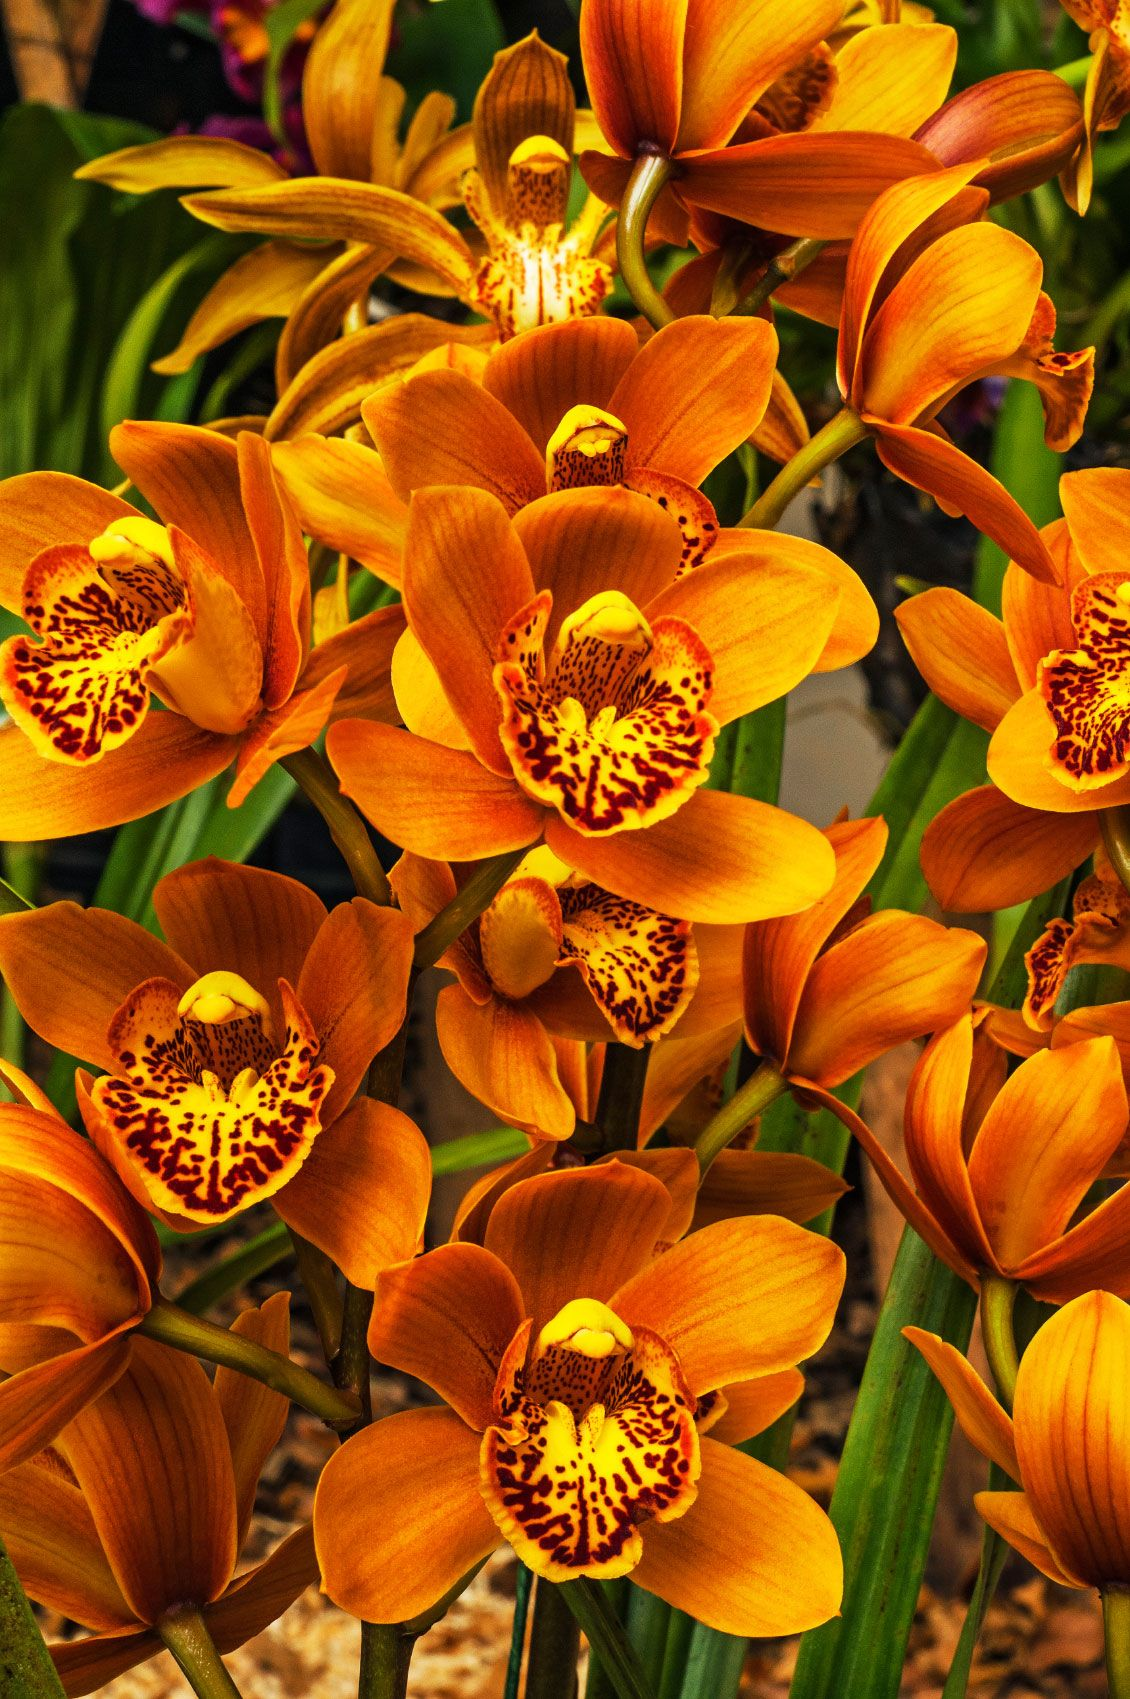 What Is A Cymbidium Orchid Information About Cymbidium Orchid Care Cymbidium Orchids Care Orchid Seeds Cymbidium Orchids